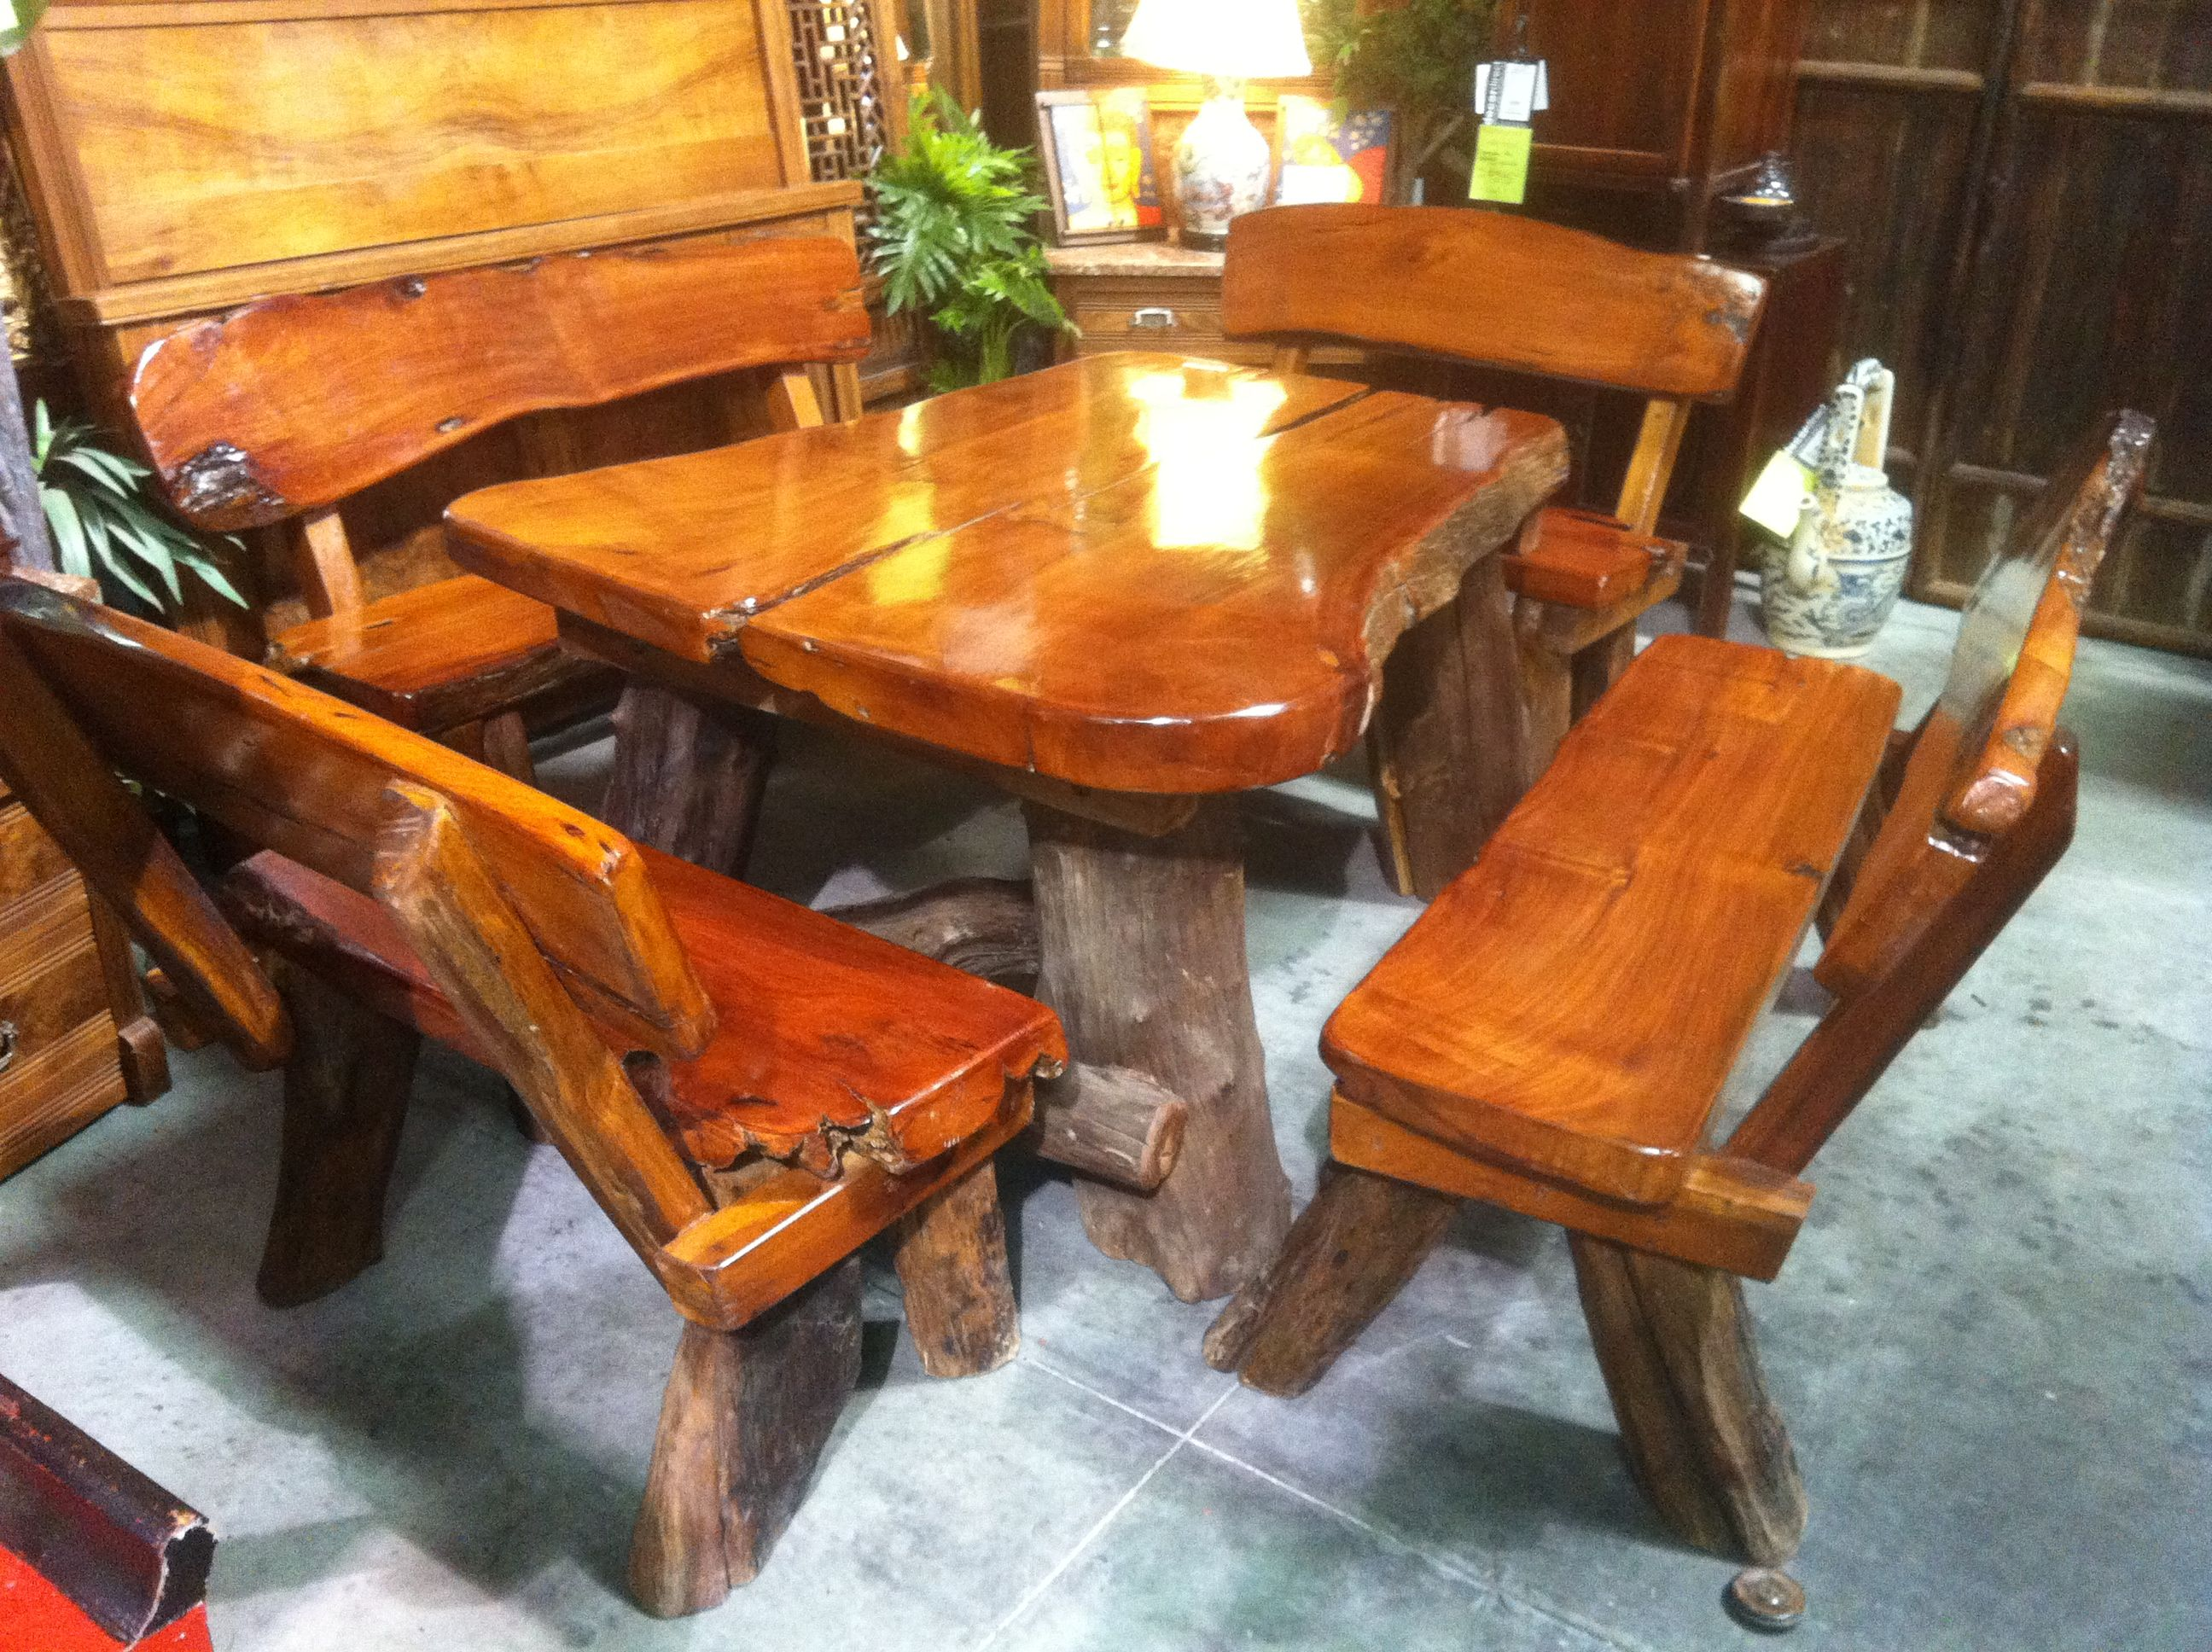 146 Best Furniture   From Tree Wood Images On Pinterest | Home, Crafts And  Wood